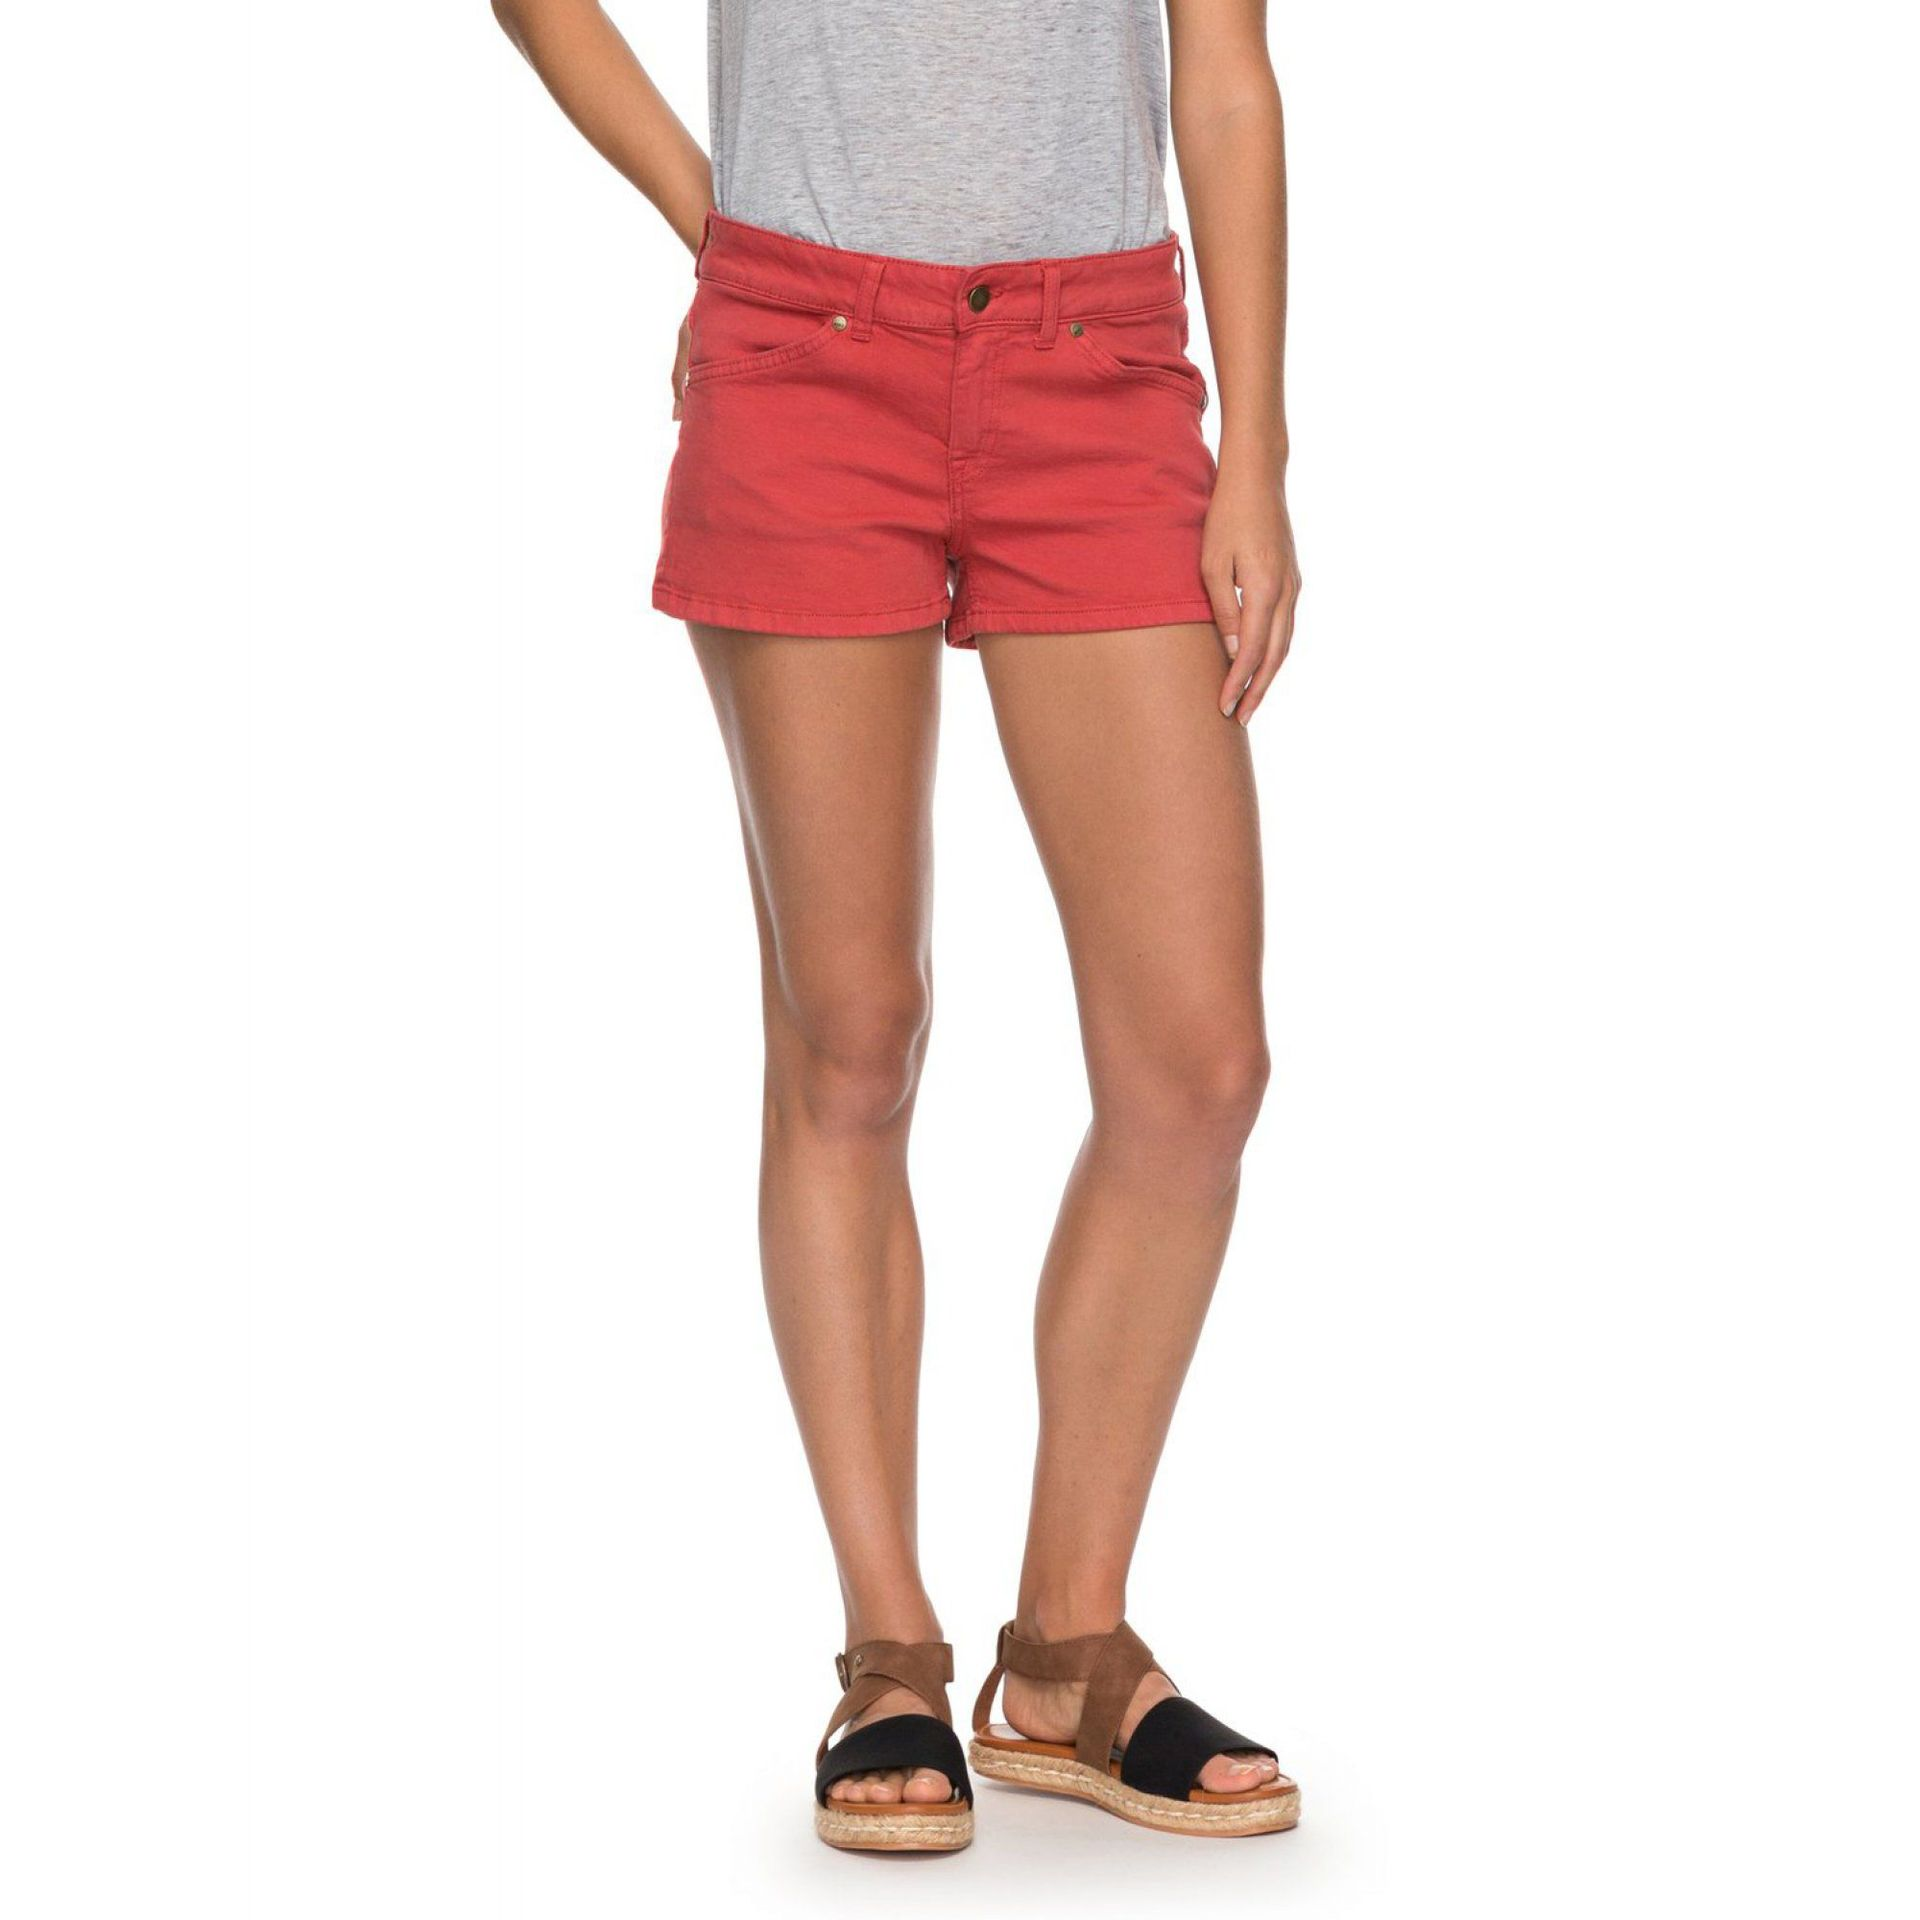 T-SHIRT ROXY SEATRIPPER DENIM SHORT TANDOORI SPICE